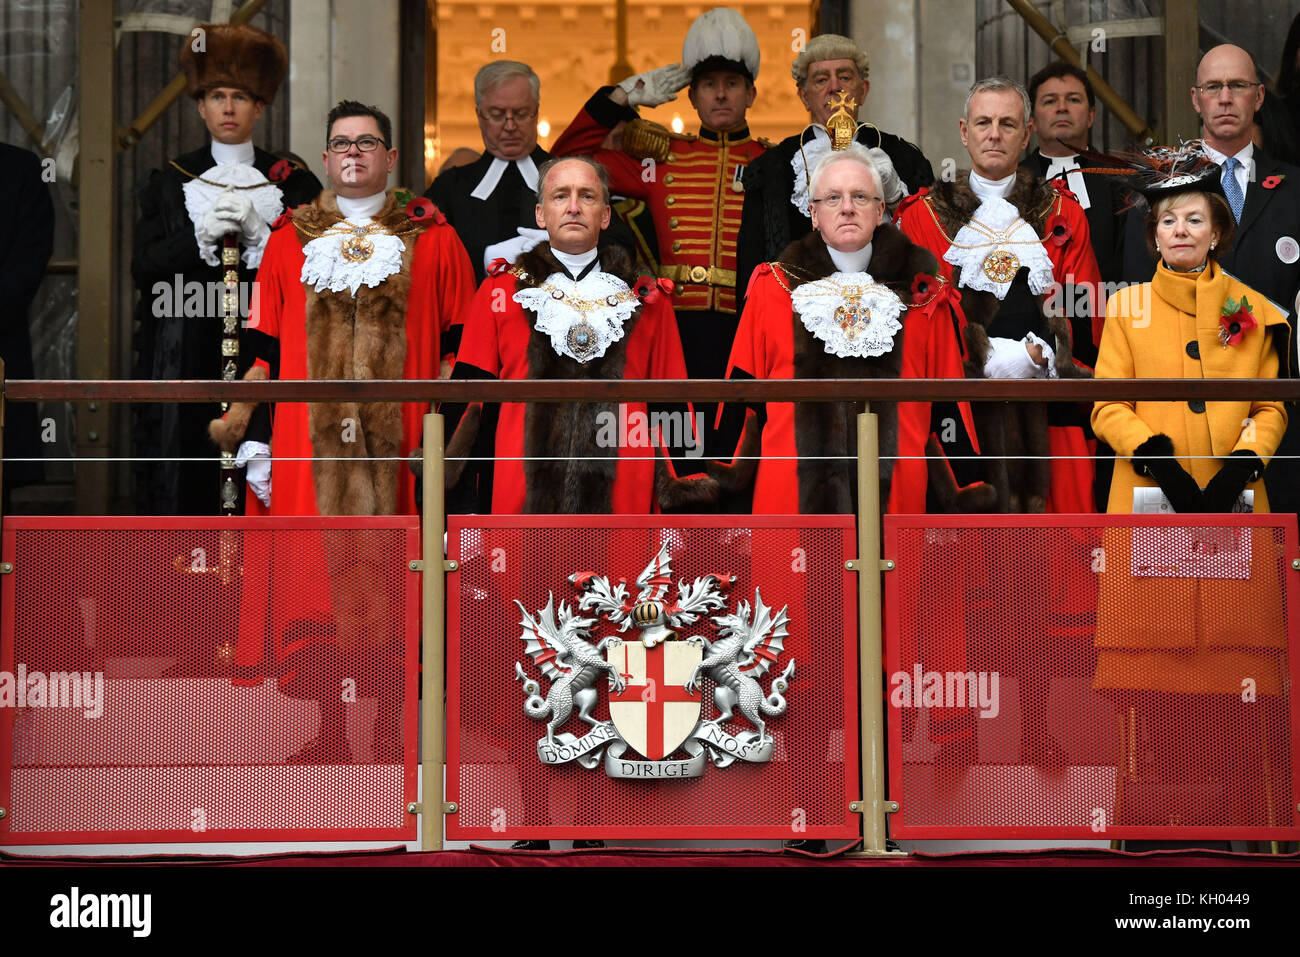 The new Lord Mayor of London Charles Bowman (front left) during a two minute silence at Mansion House in London, - Stock Image